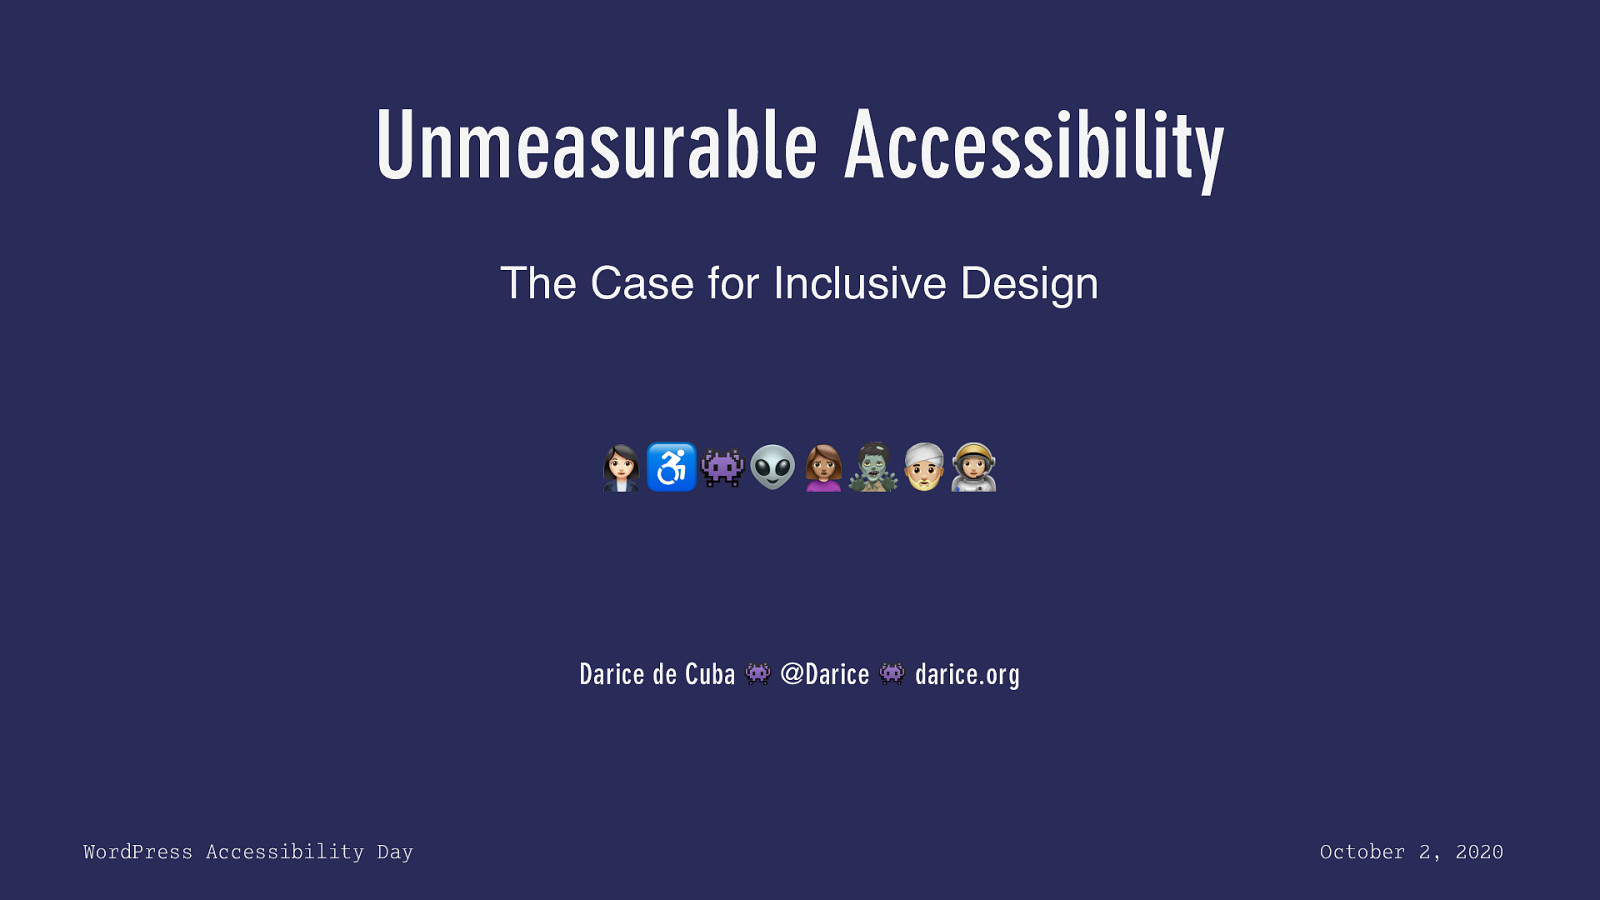 Unmeasurable Accessibility: The Case for Inclusive Design